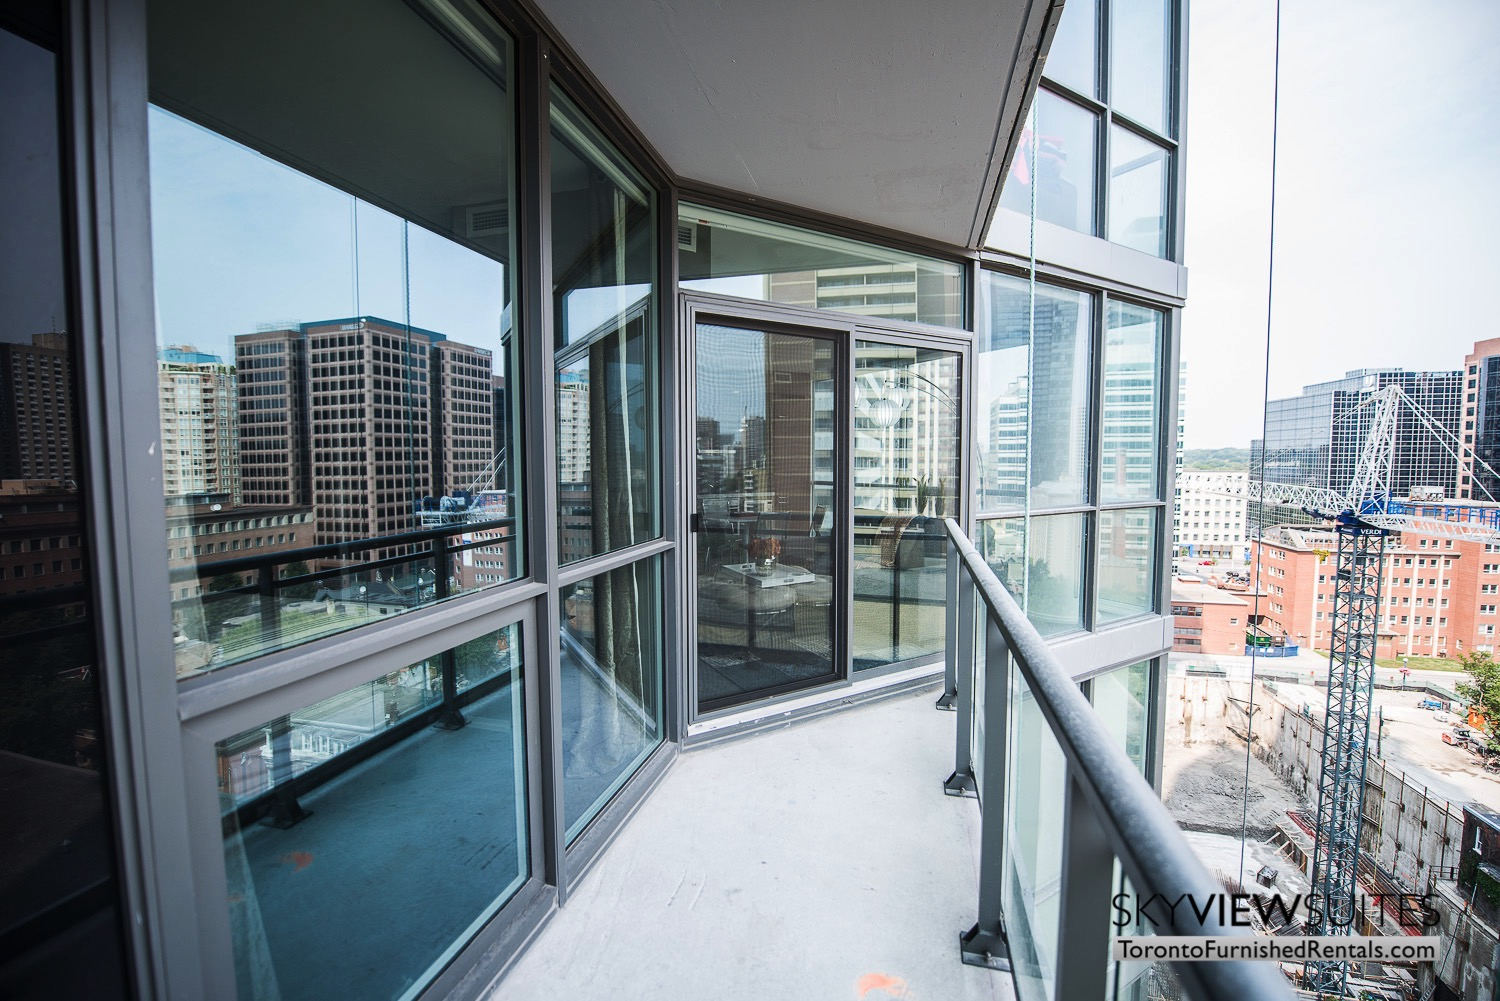 furnished-apartment- ktichen-waterfrontfurnished-apartment- ktichen-waterfrontfurnished-apartment- views-Yorkville